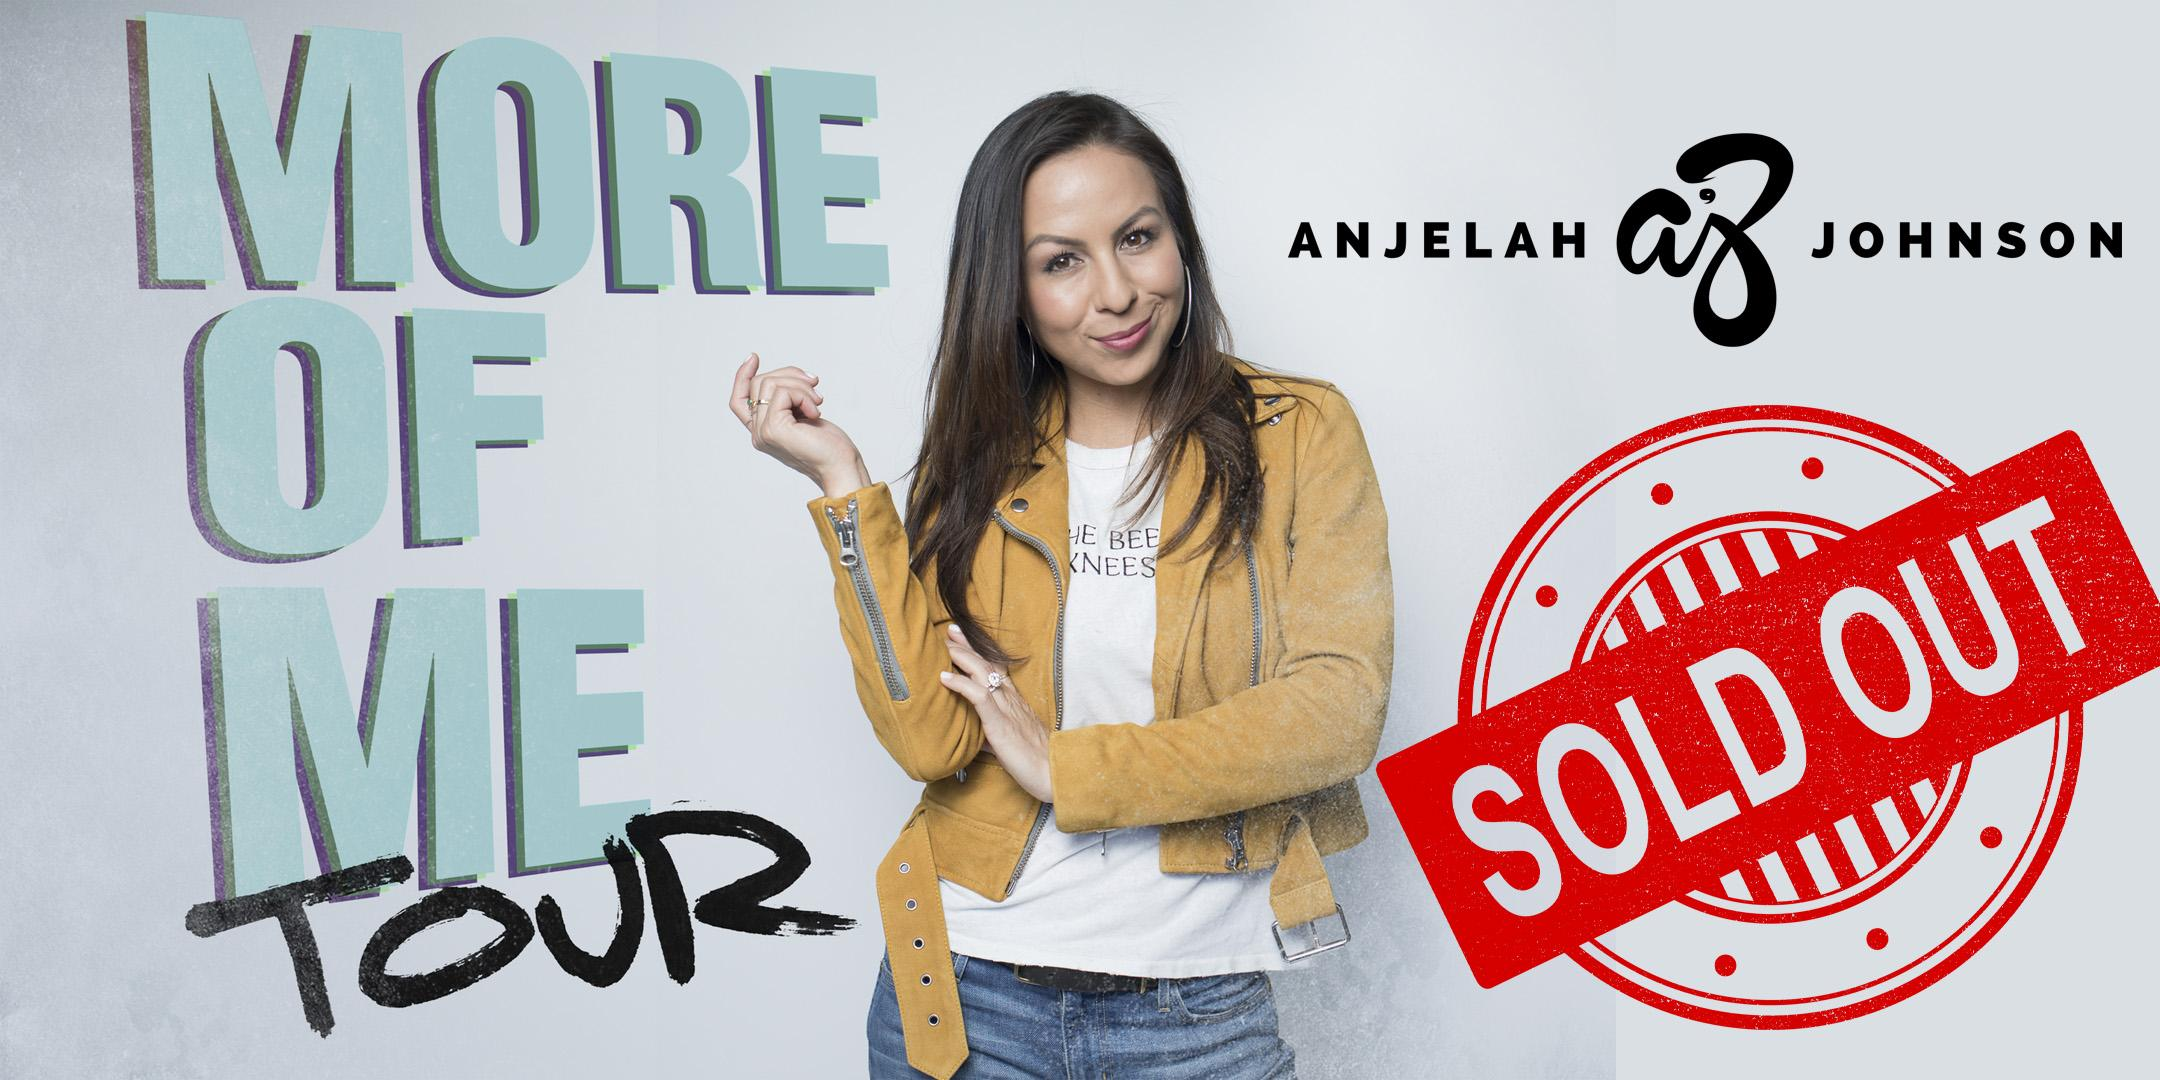 Anjelah Johnson - March 9th - Saturday 7:30pm